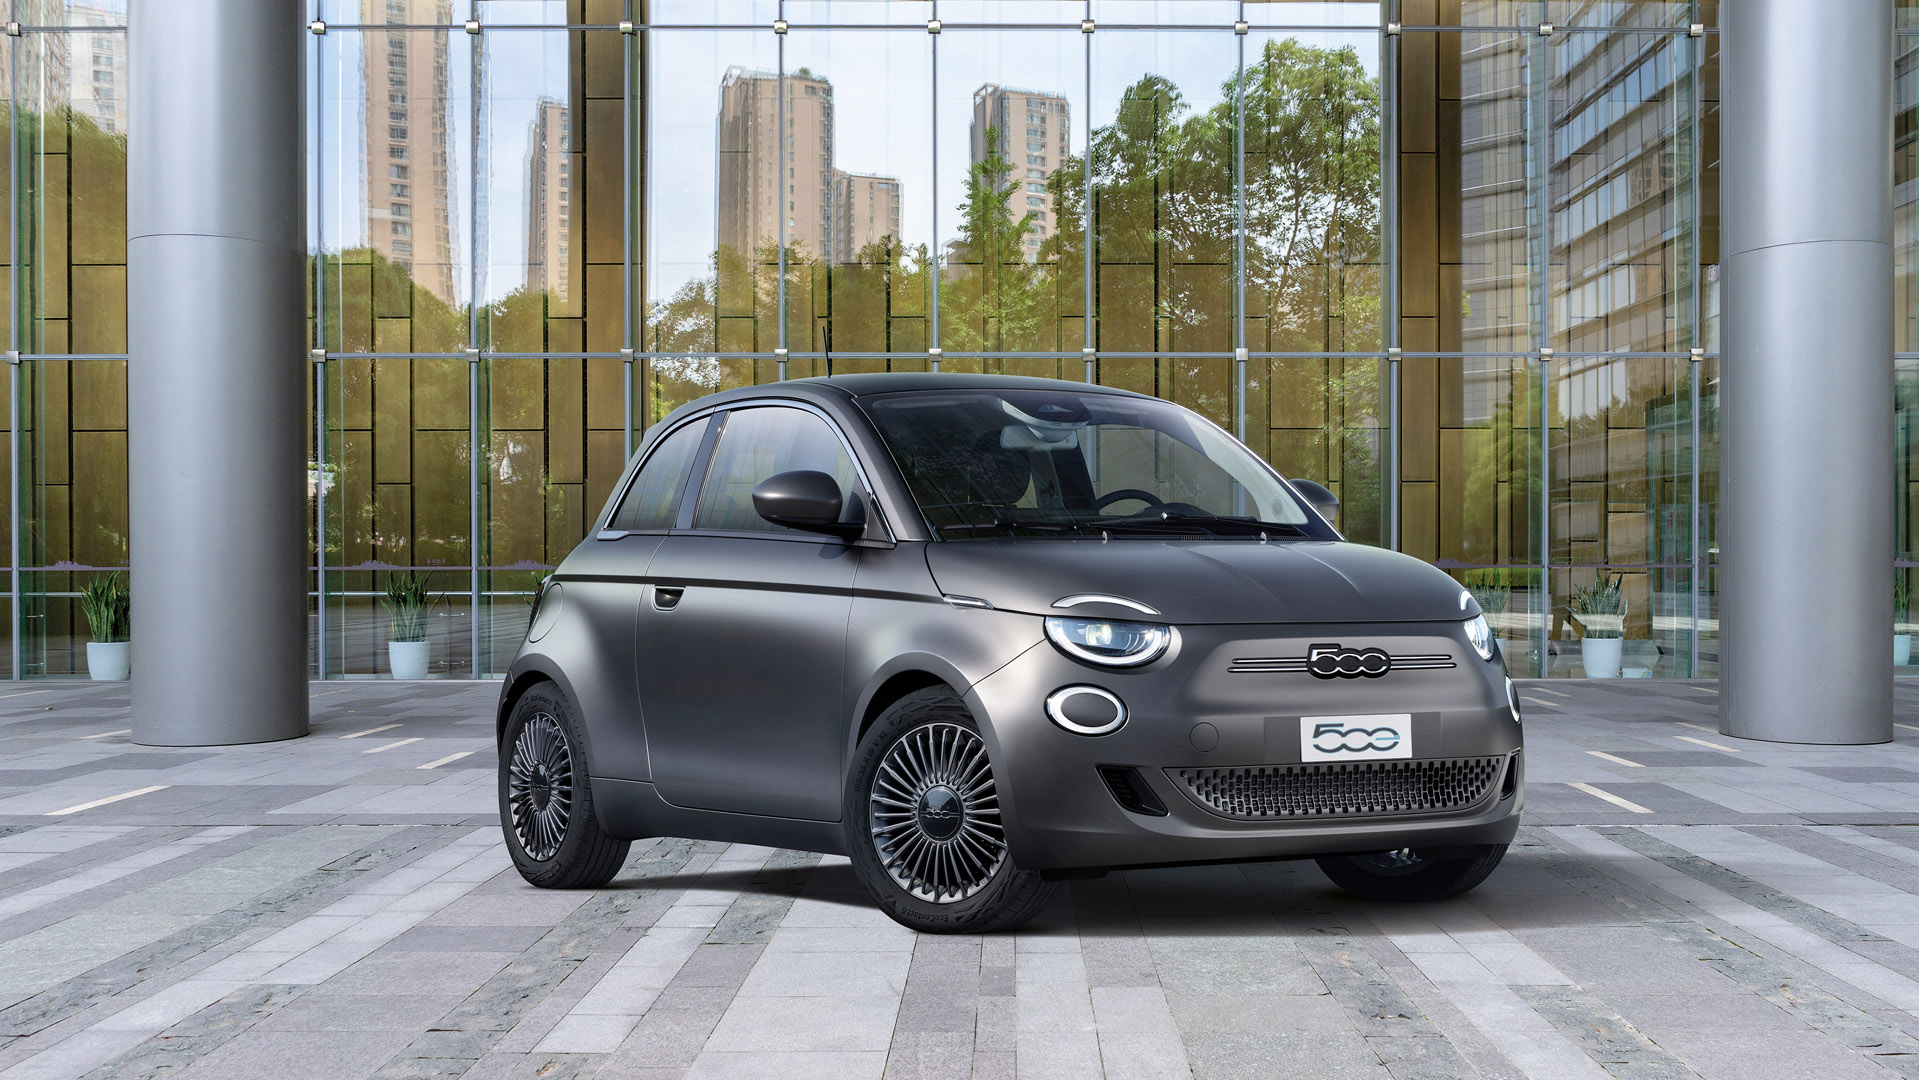 Fiat 500 Electric car design